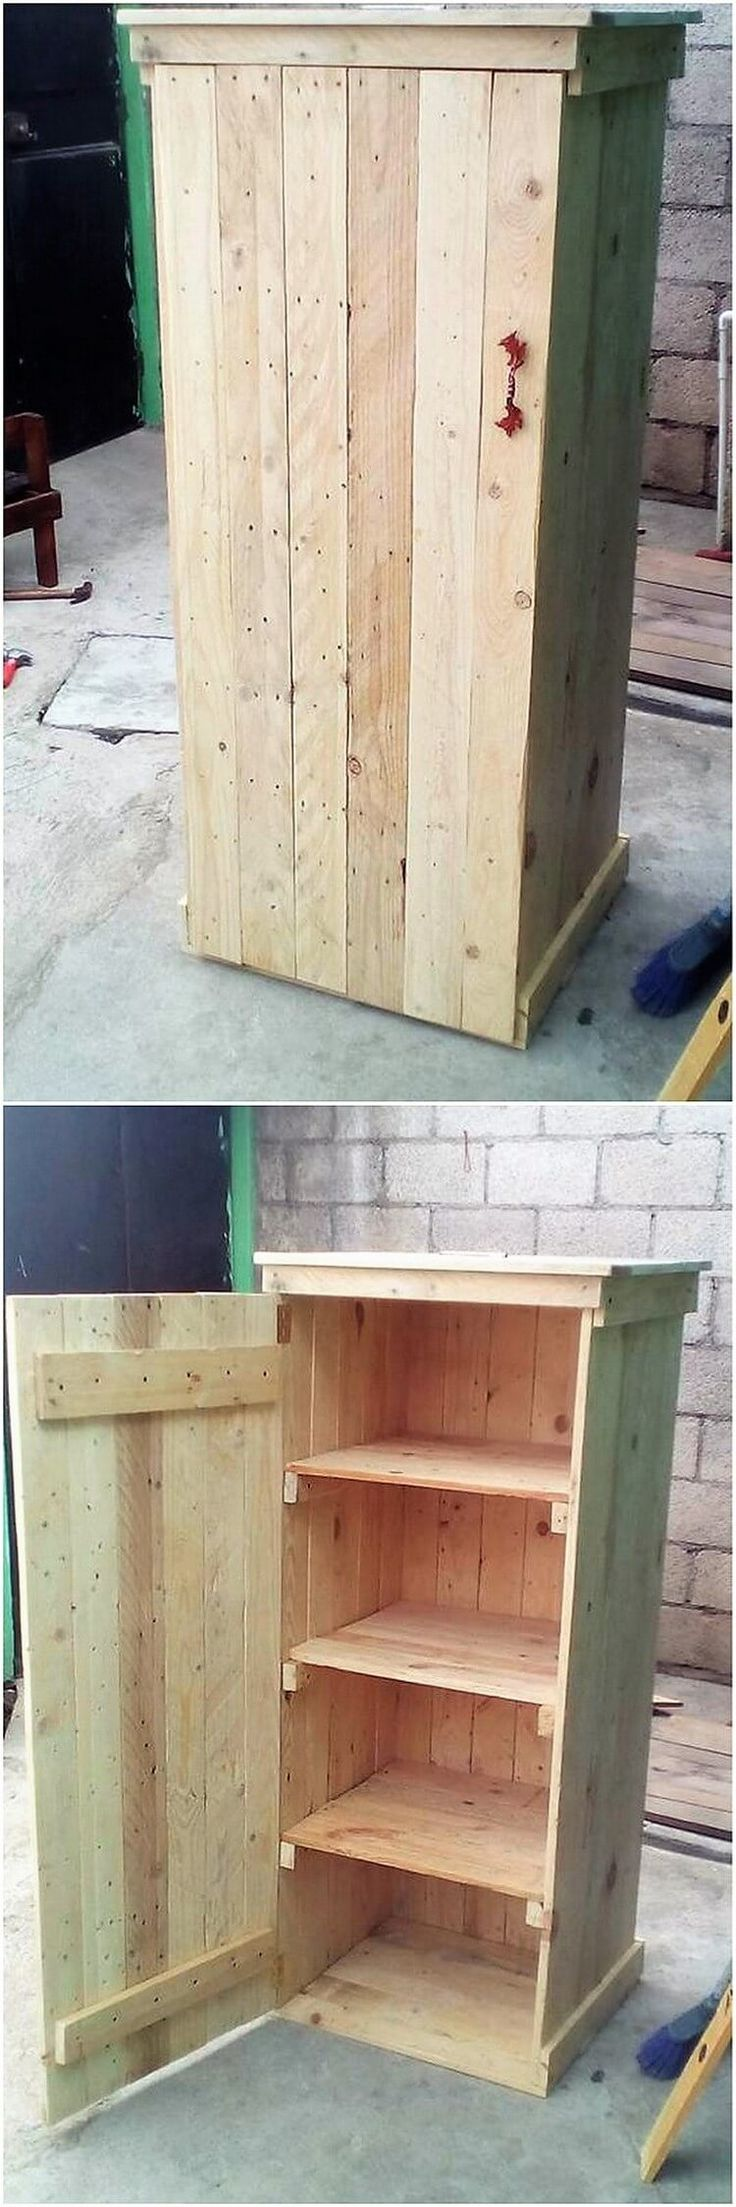 This pallet cabinet has been featured out with the designing work that is much similar with the shape of the cupboard effect. Check out the image outlook idea and you will view the custom use of the cabinet as the storage box where the shelving cabinet are individually added in 2-3 quantity.